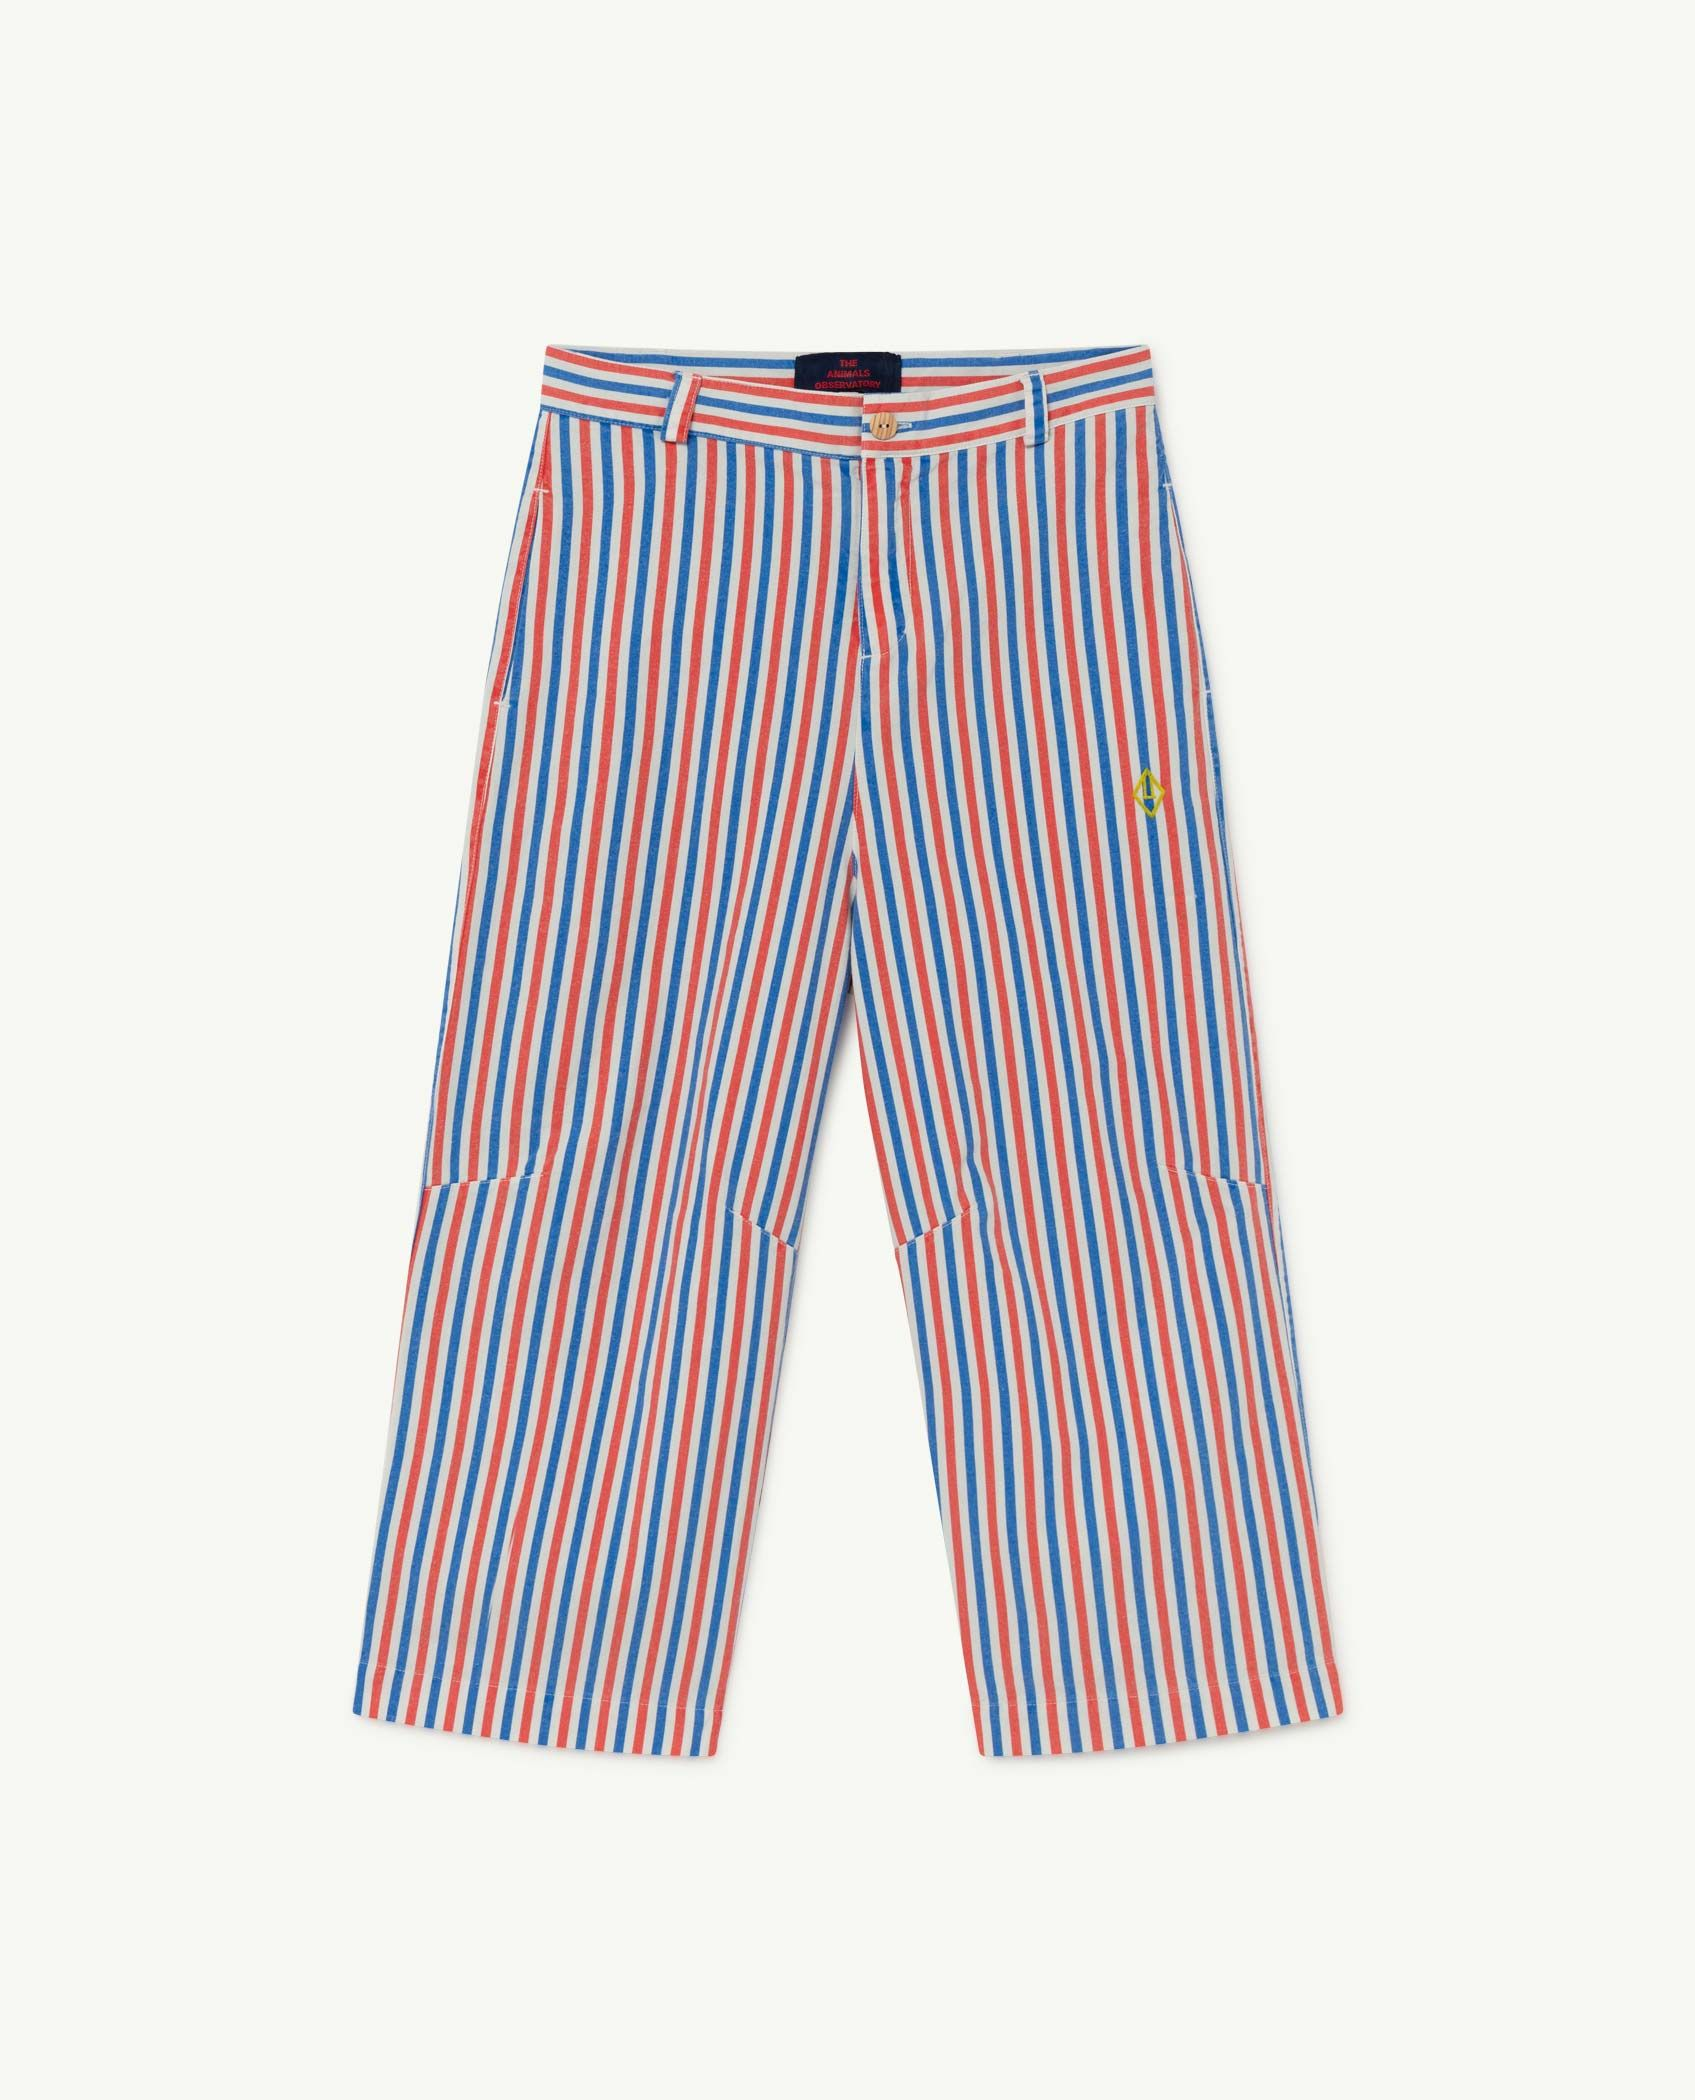 White Stripes Camel Trousers img-1